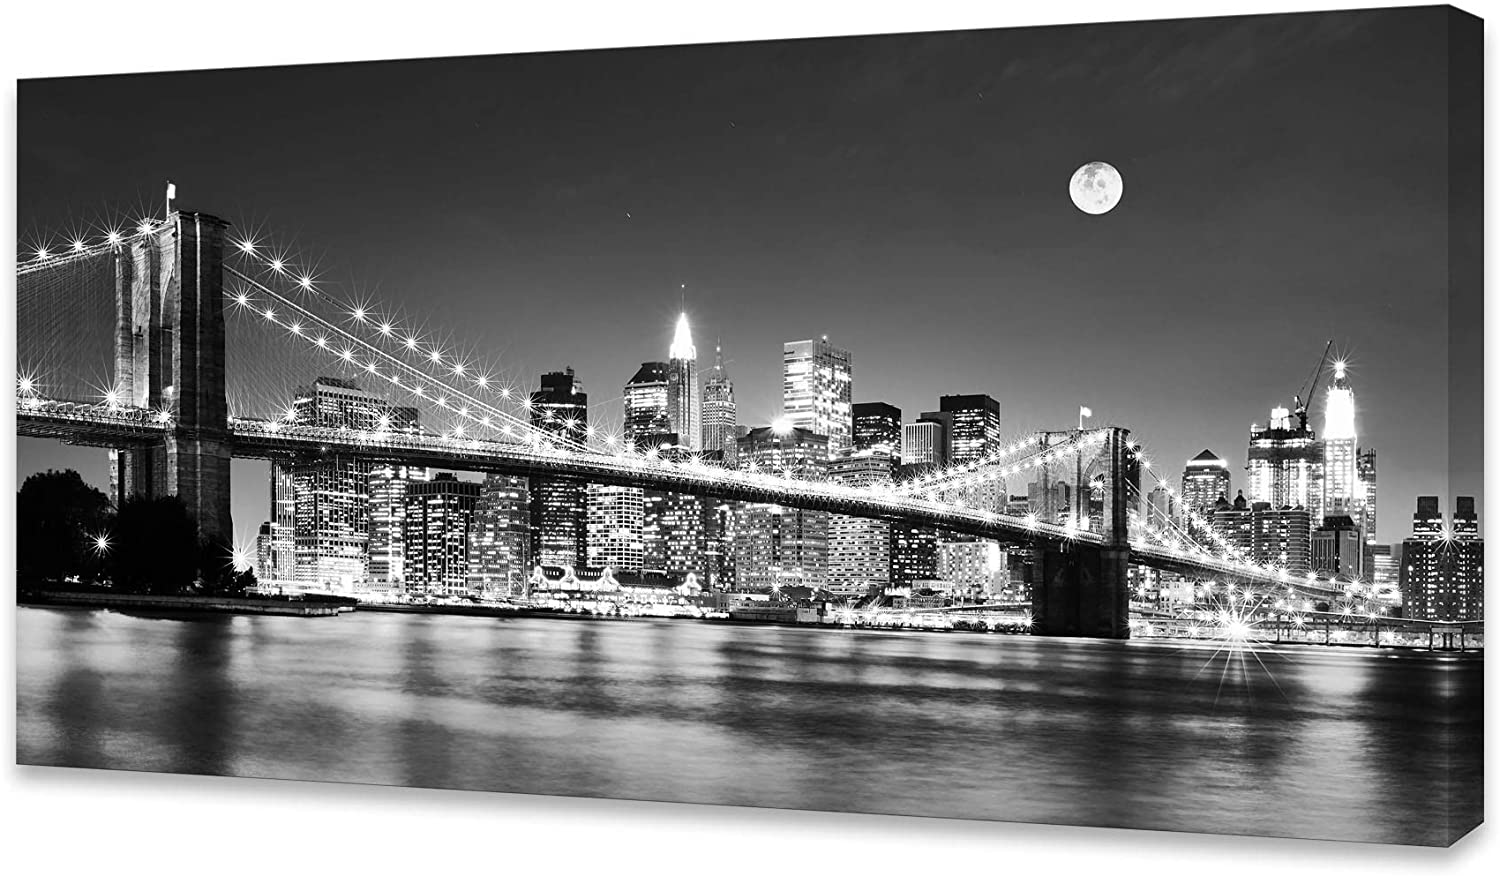 Baisuart-Q30350 Brooklyn Bridge Night View 1 Panels Landscape Artwork Canvas Prints Moon Night New York City Scene Picture Paintings Black and White Wall Art for Oiffce Home Decorations Wall Decor